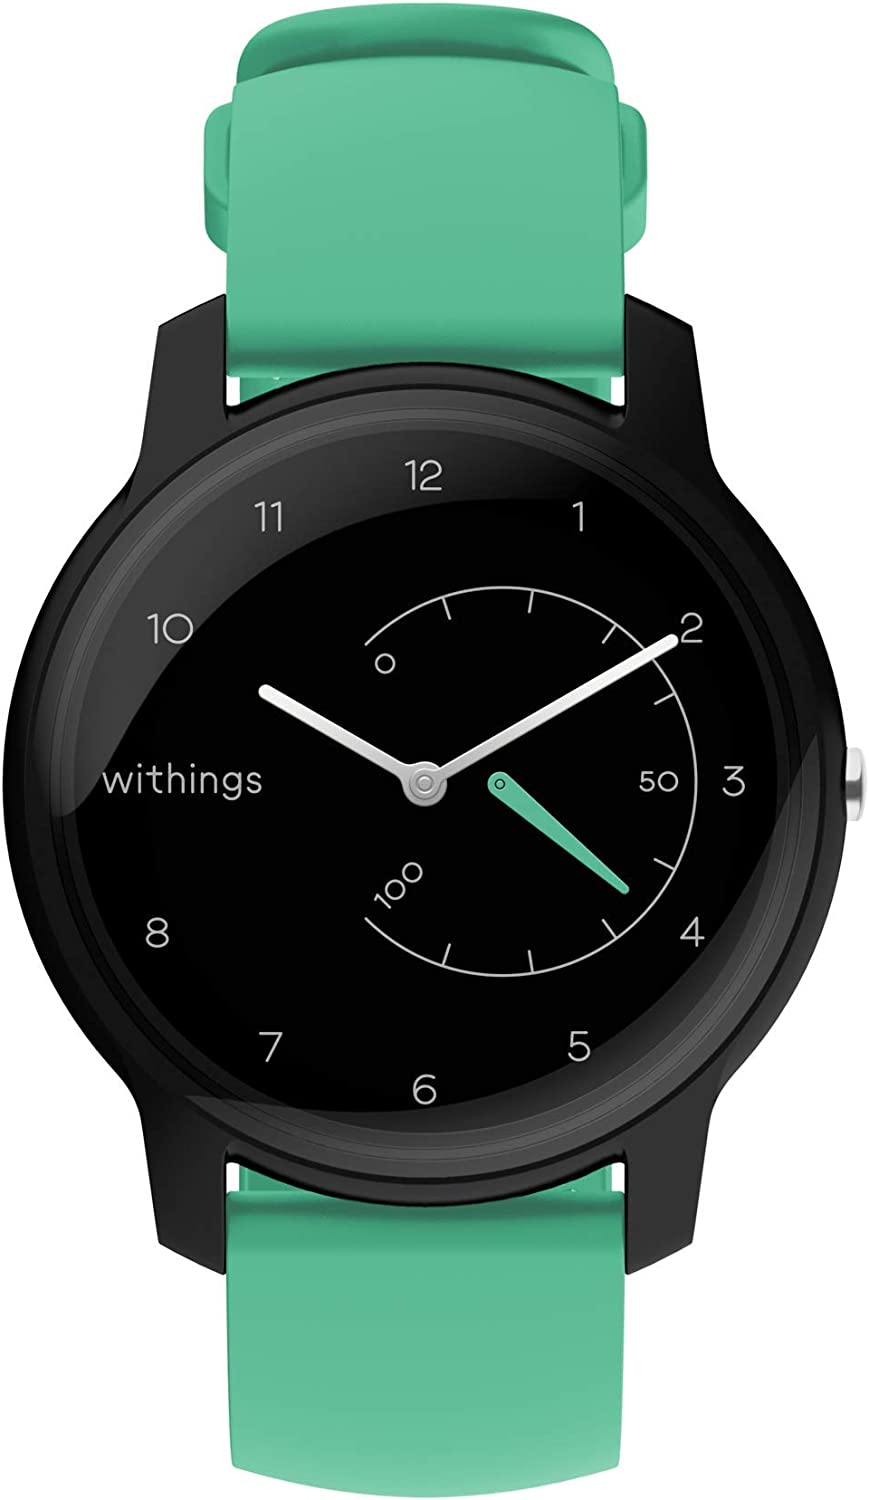 Amazon.com : Withings/Nokia - Wristbands for Steel HR 36mm ...